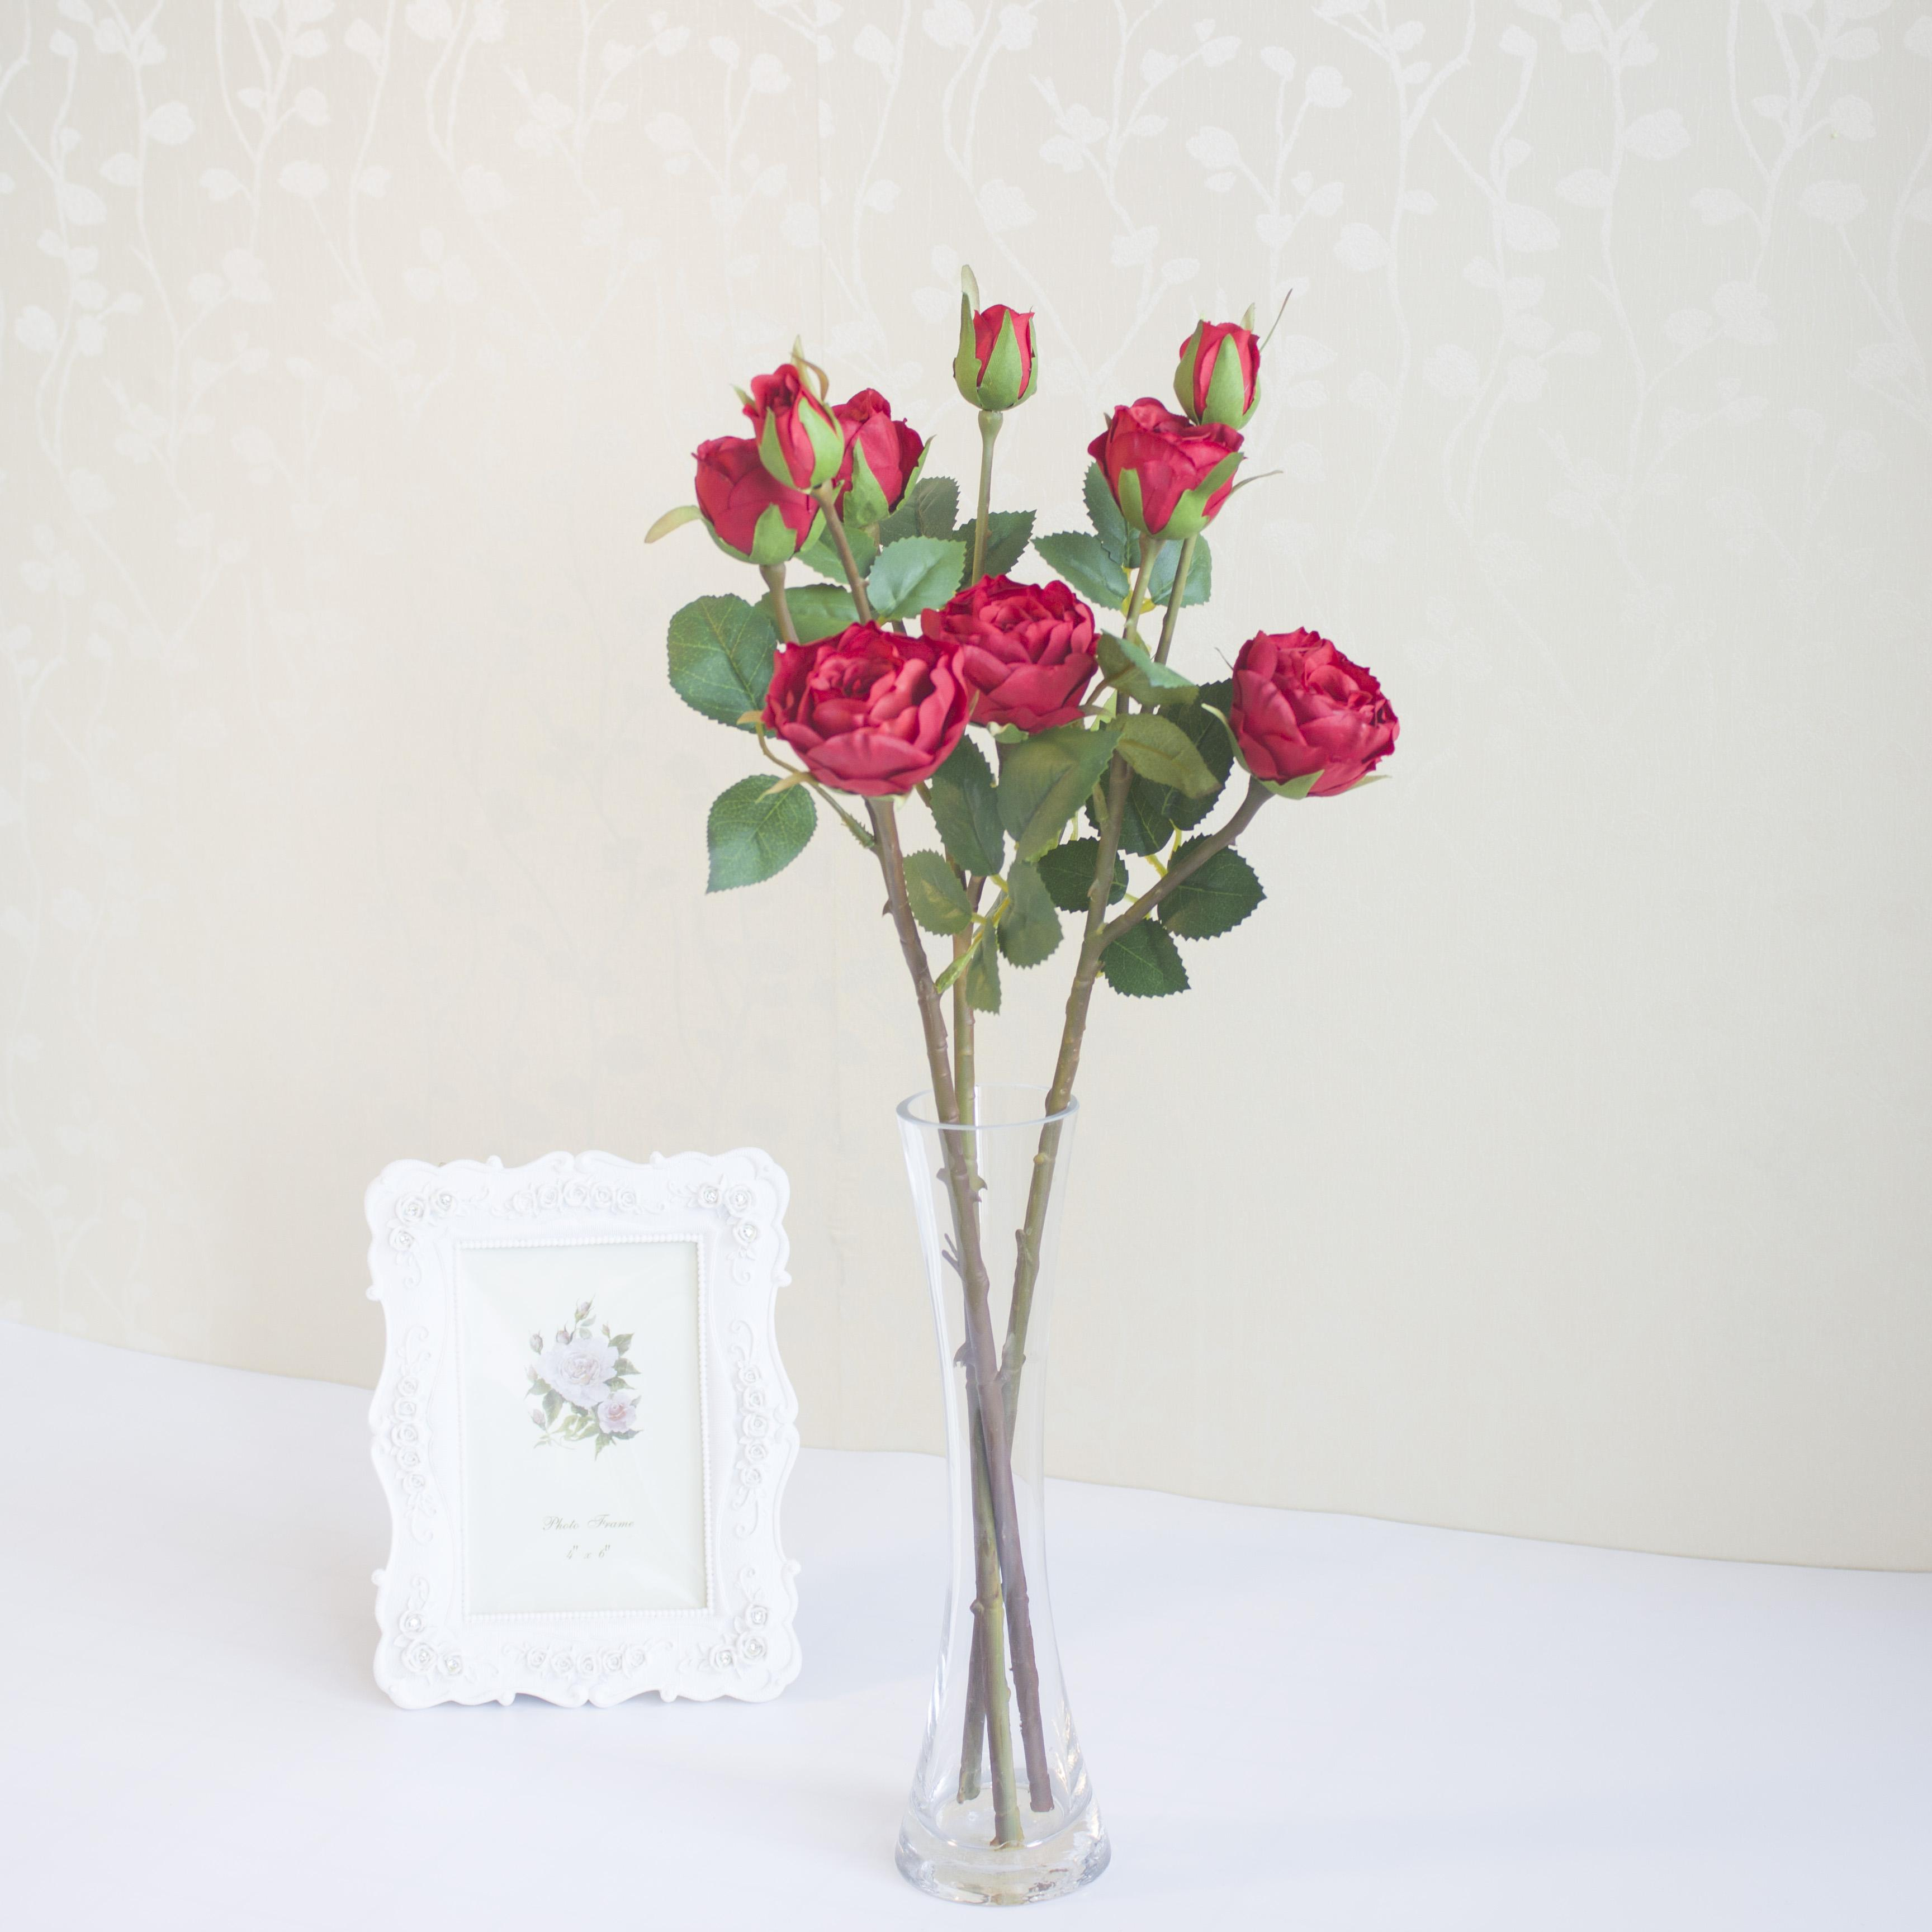 Ubiz 3 heads rtificial flowers petals for wedding centerpieces ubiz 3 heads rtificial flowers petals for wedding centerpieces decoration mariage silk roses household products rose in the glass ubiz flower home wedding izmirmasajfo